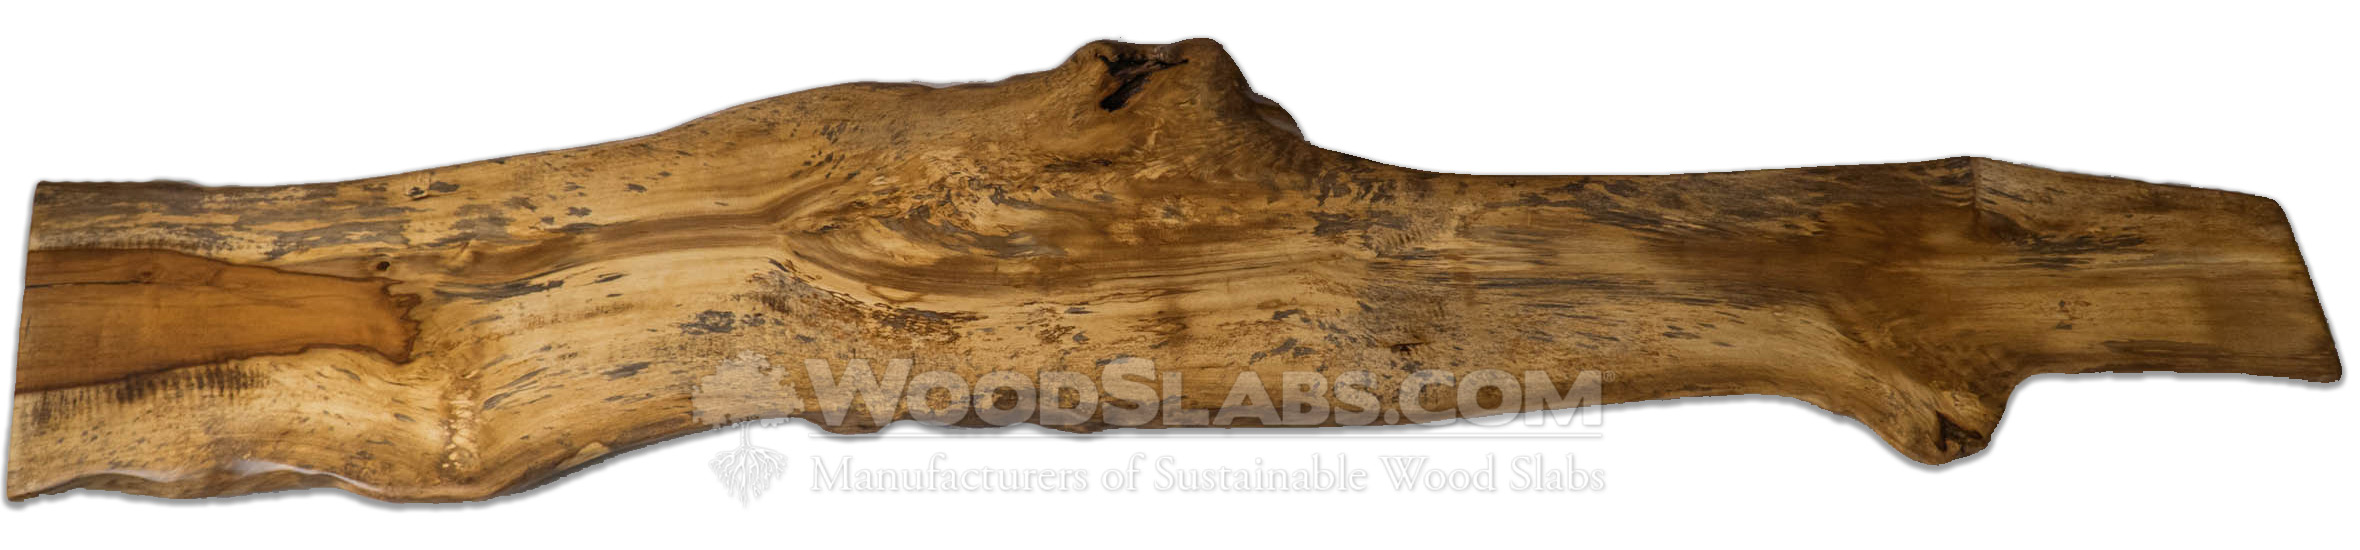 Chinese Tallow Wood Slabs